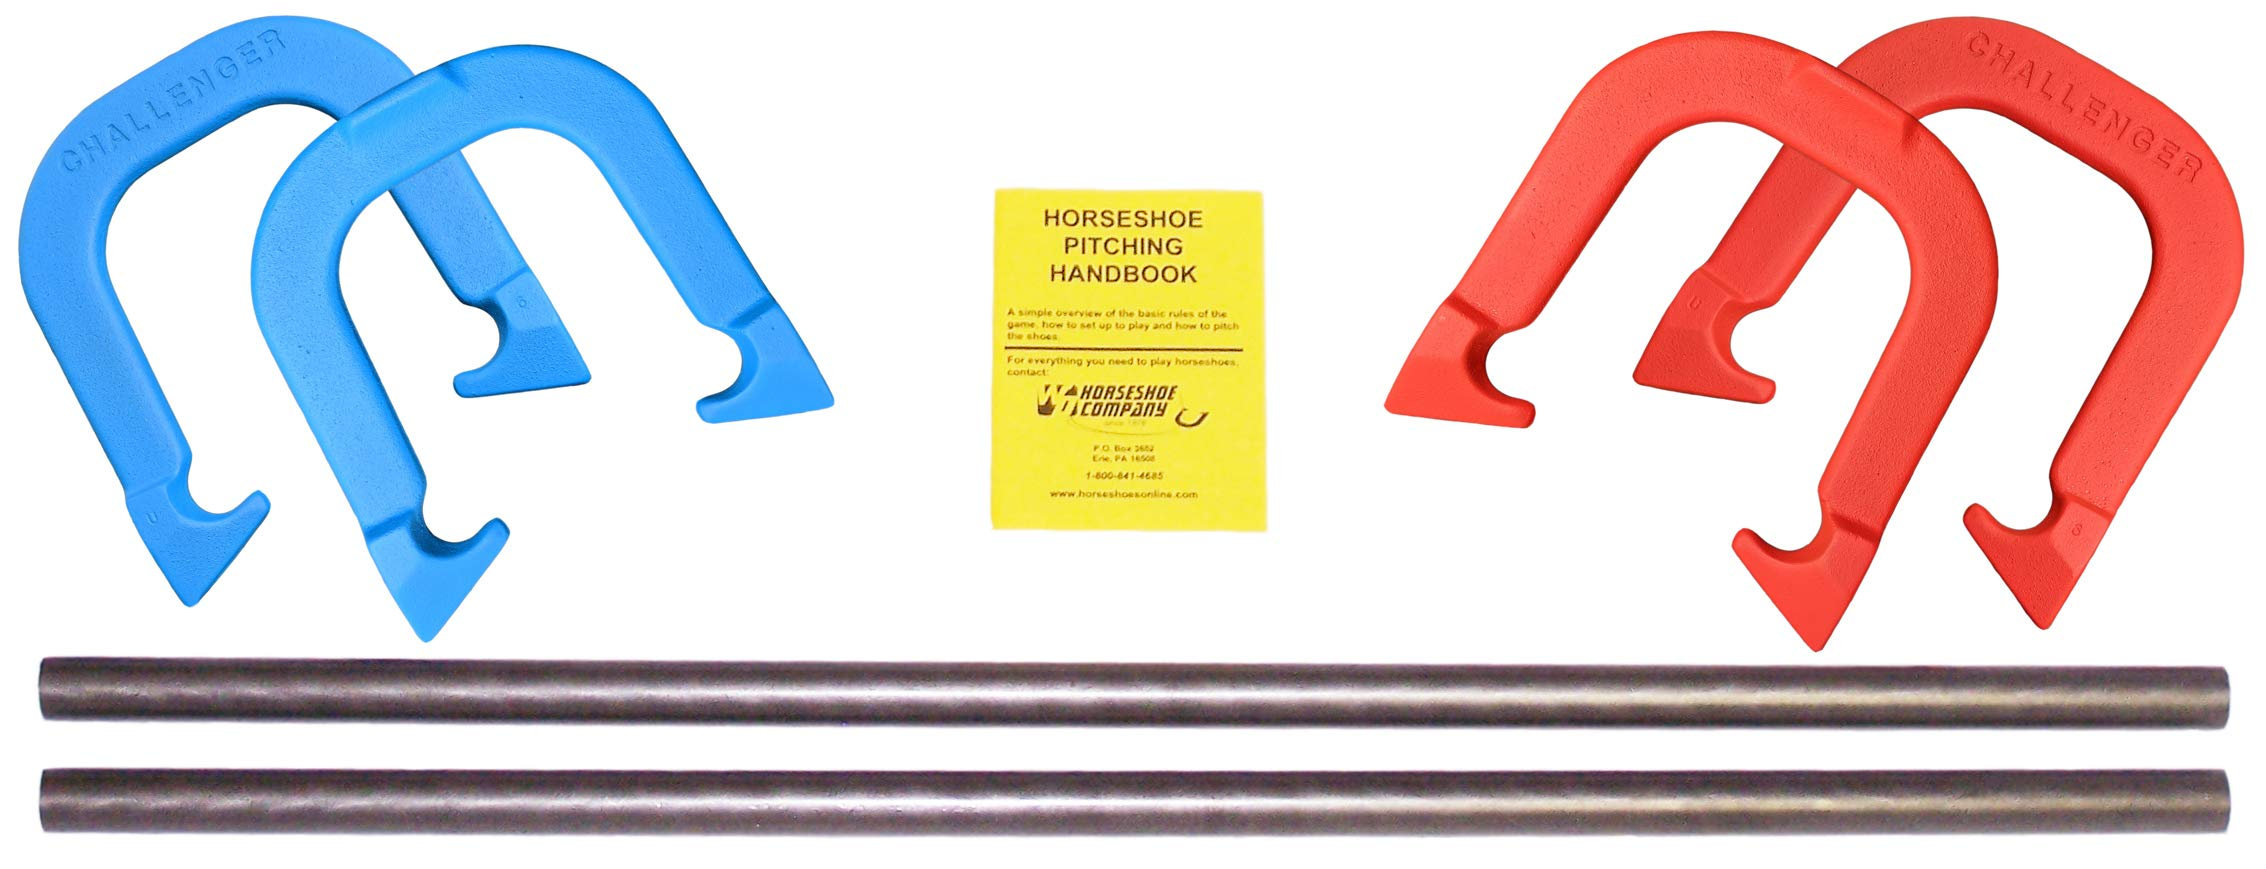 Challenger Professional Pitching Horseshoes Game Set- Made in USA! (Red & Blue- Complete Game Set (4 Shoes, 2 Stakes & Rule Book)) by Thoroughbred Horseshoes